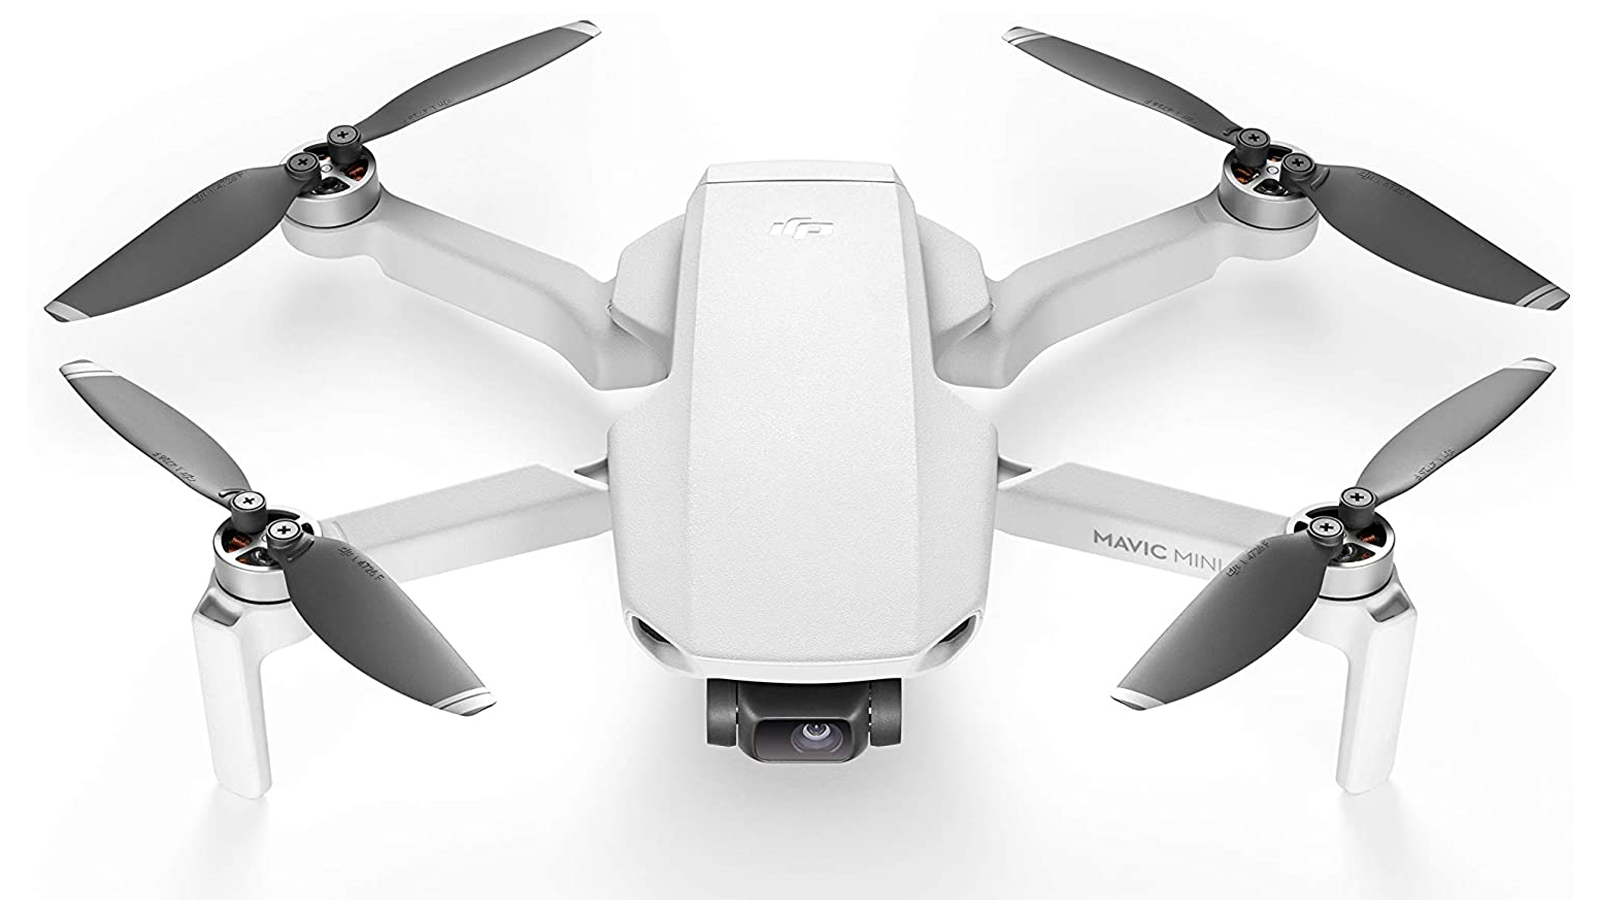 DJI Mavic Mini best camera drone under $500 for Father's Day 2020 with 12 MP photos and 2.7K HD video lightweight collapsible drone